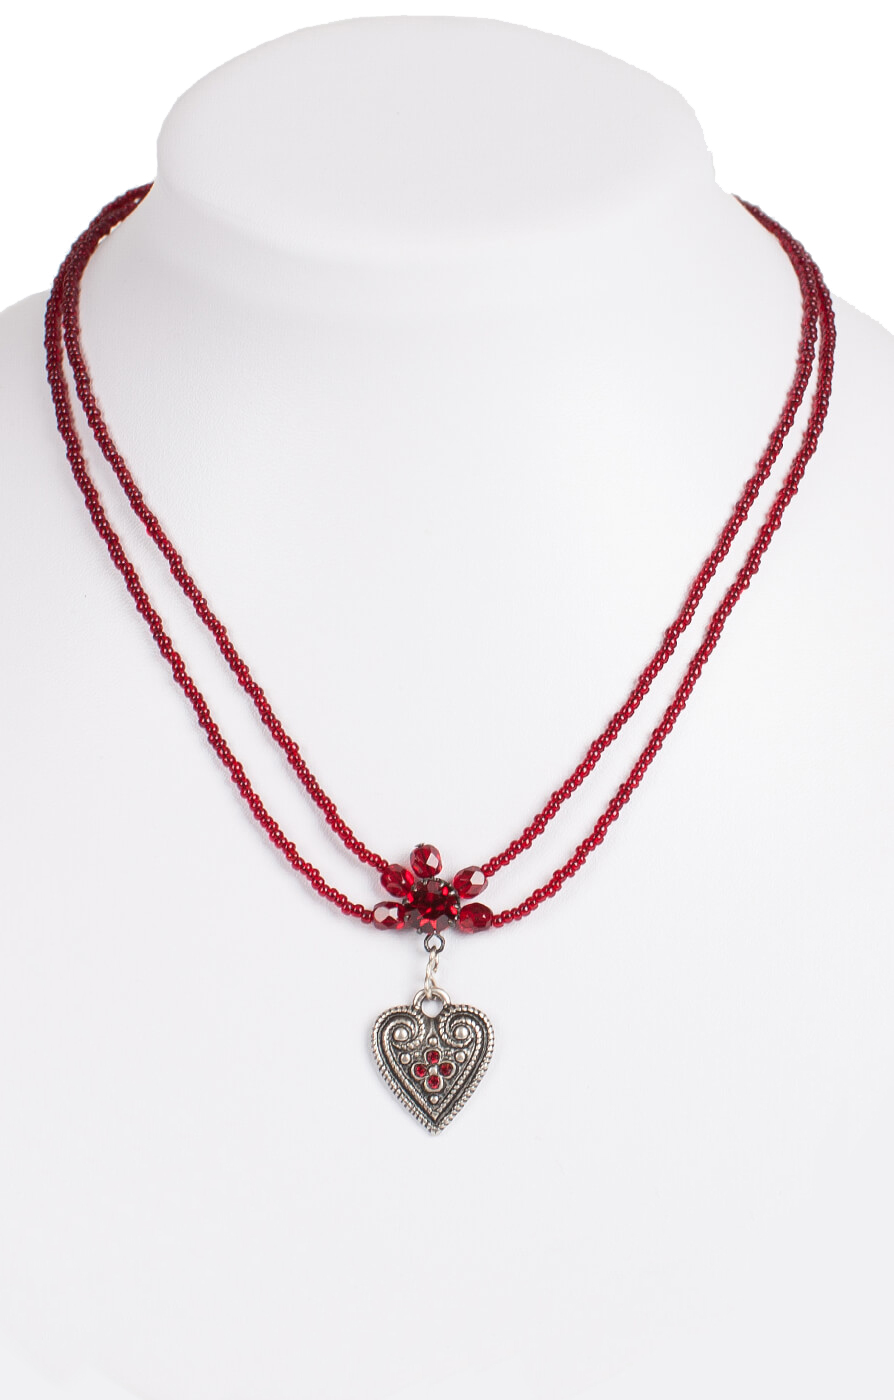 Traditional necklace 13007-2044, red von Schuhmacher